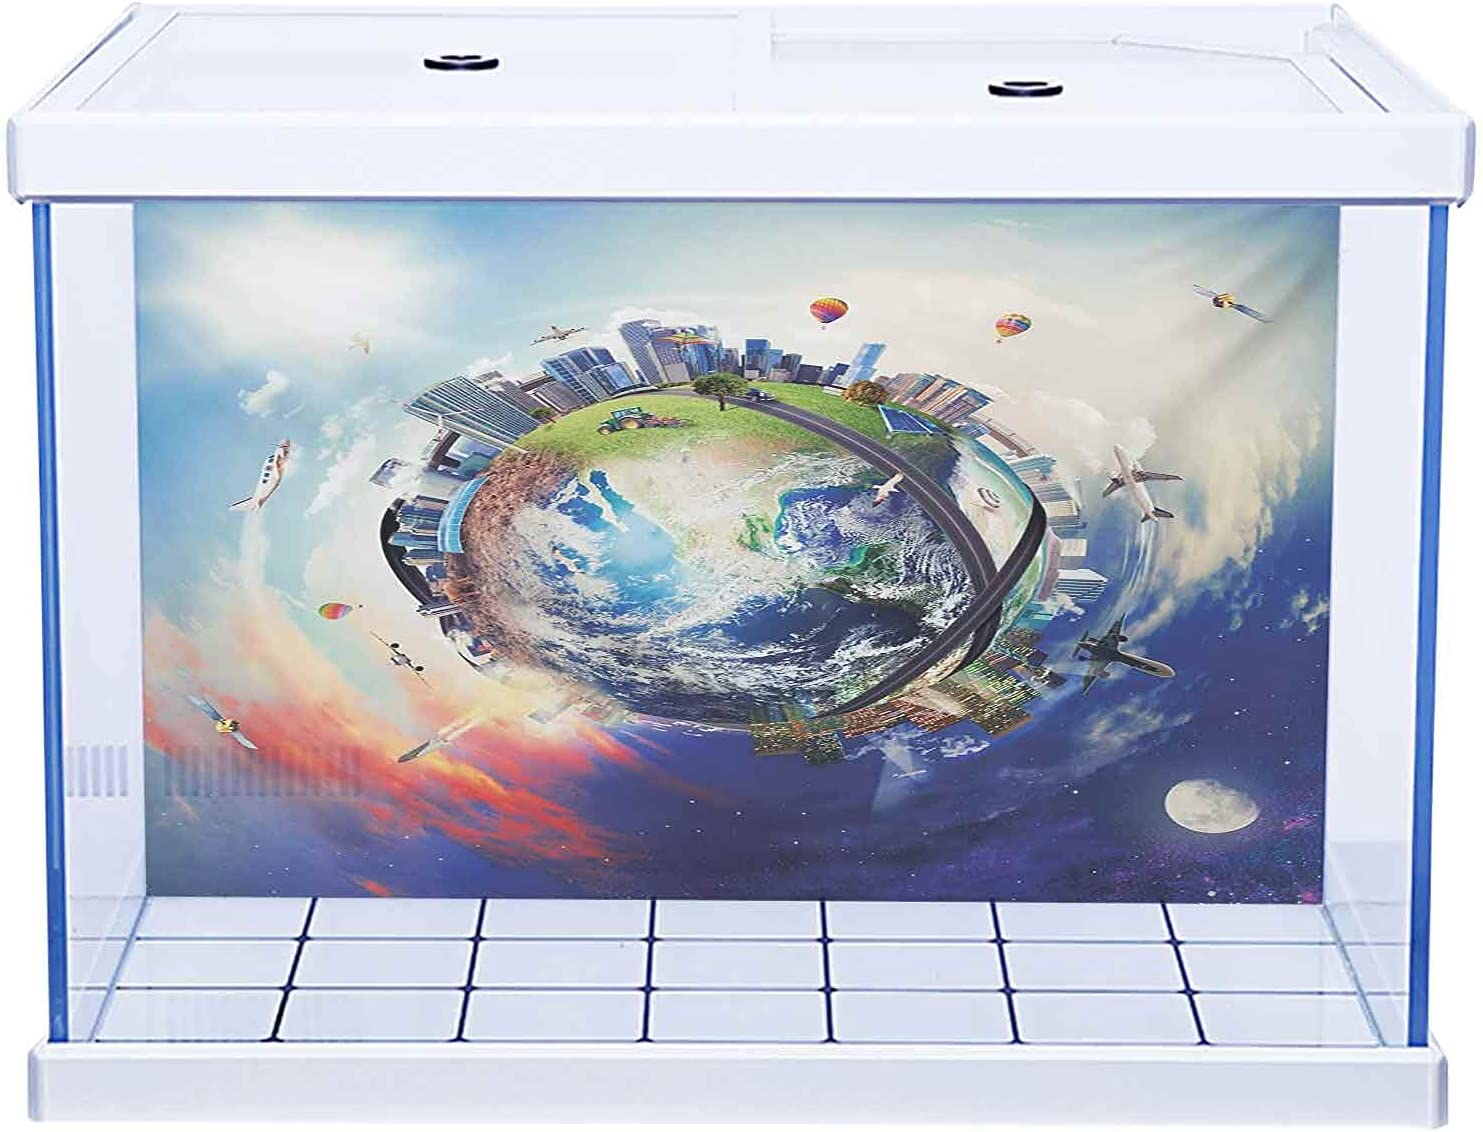 Baltimore Mall Aquarium Background Poster World Fort Worth Mall Global A Business of View